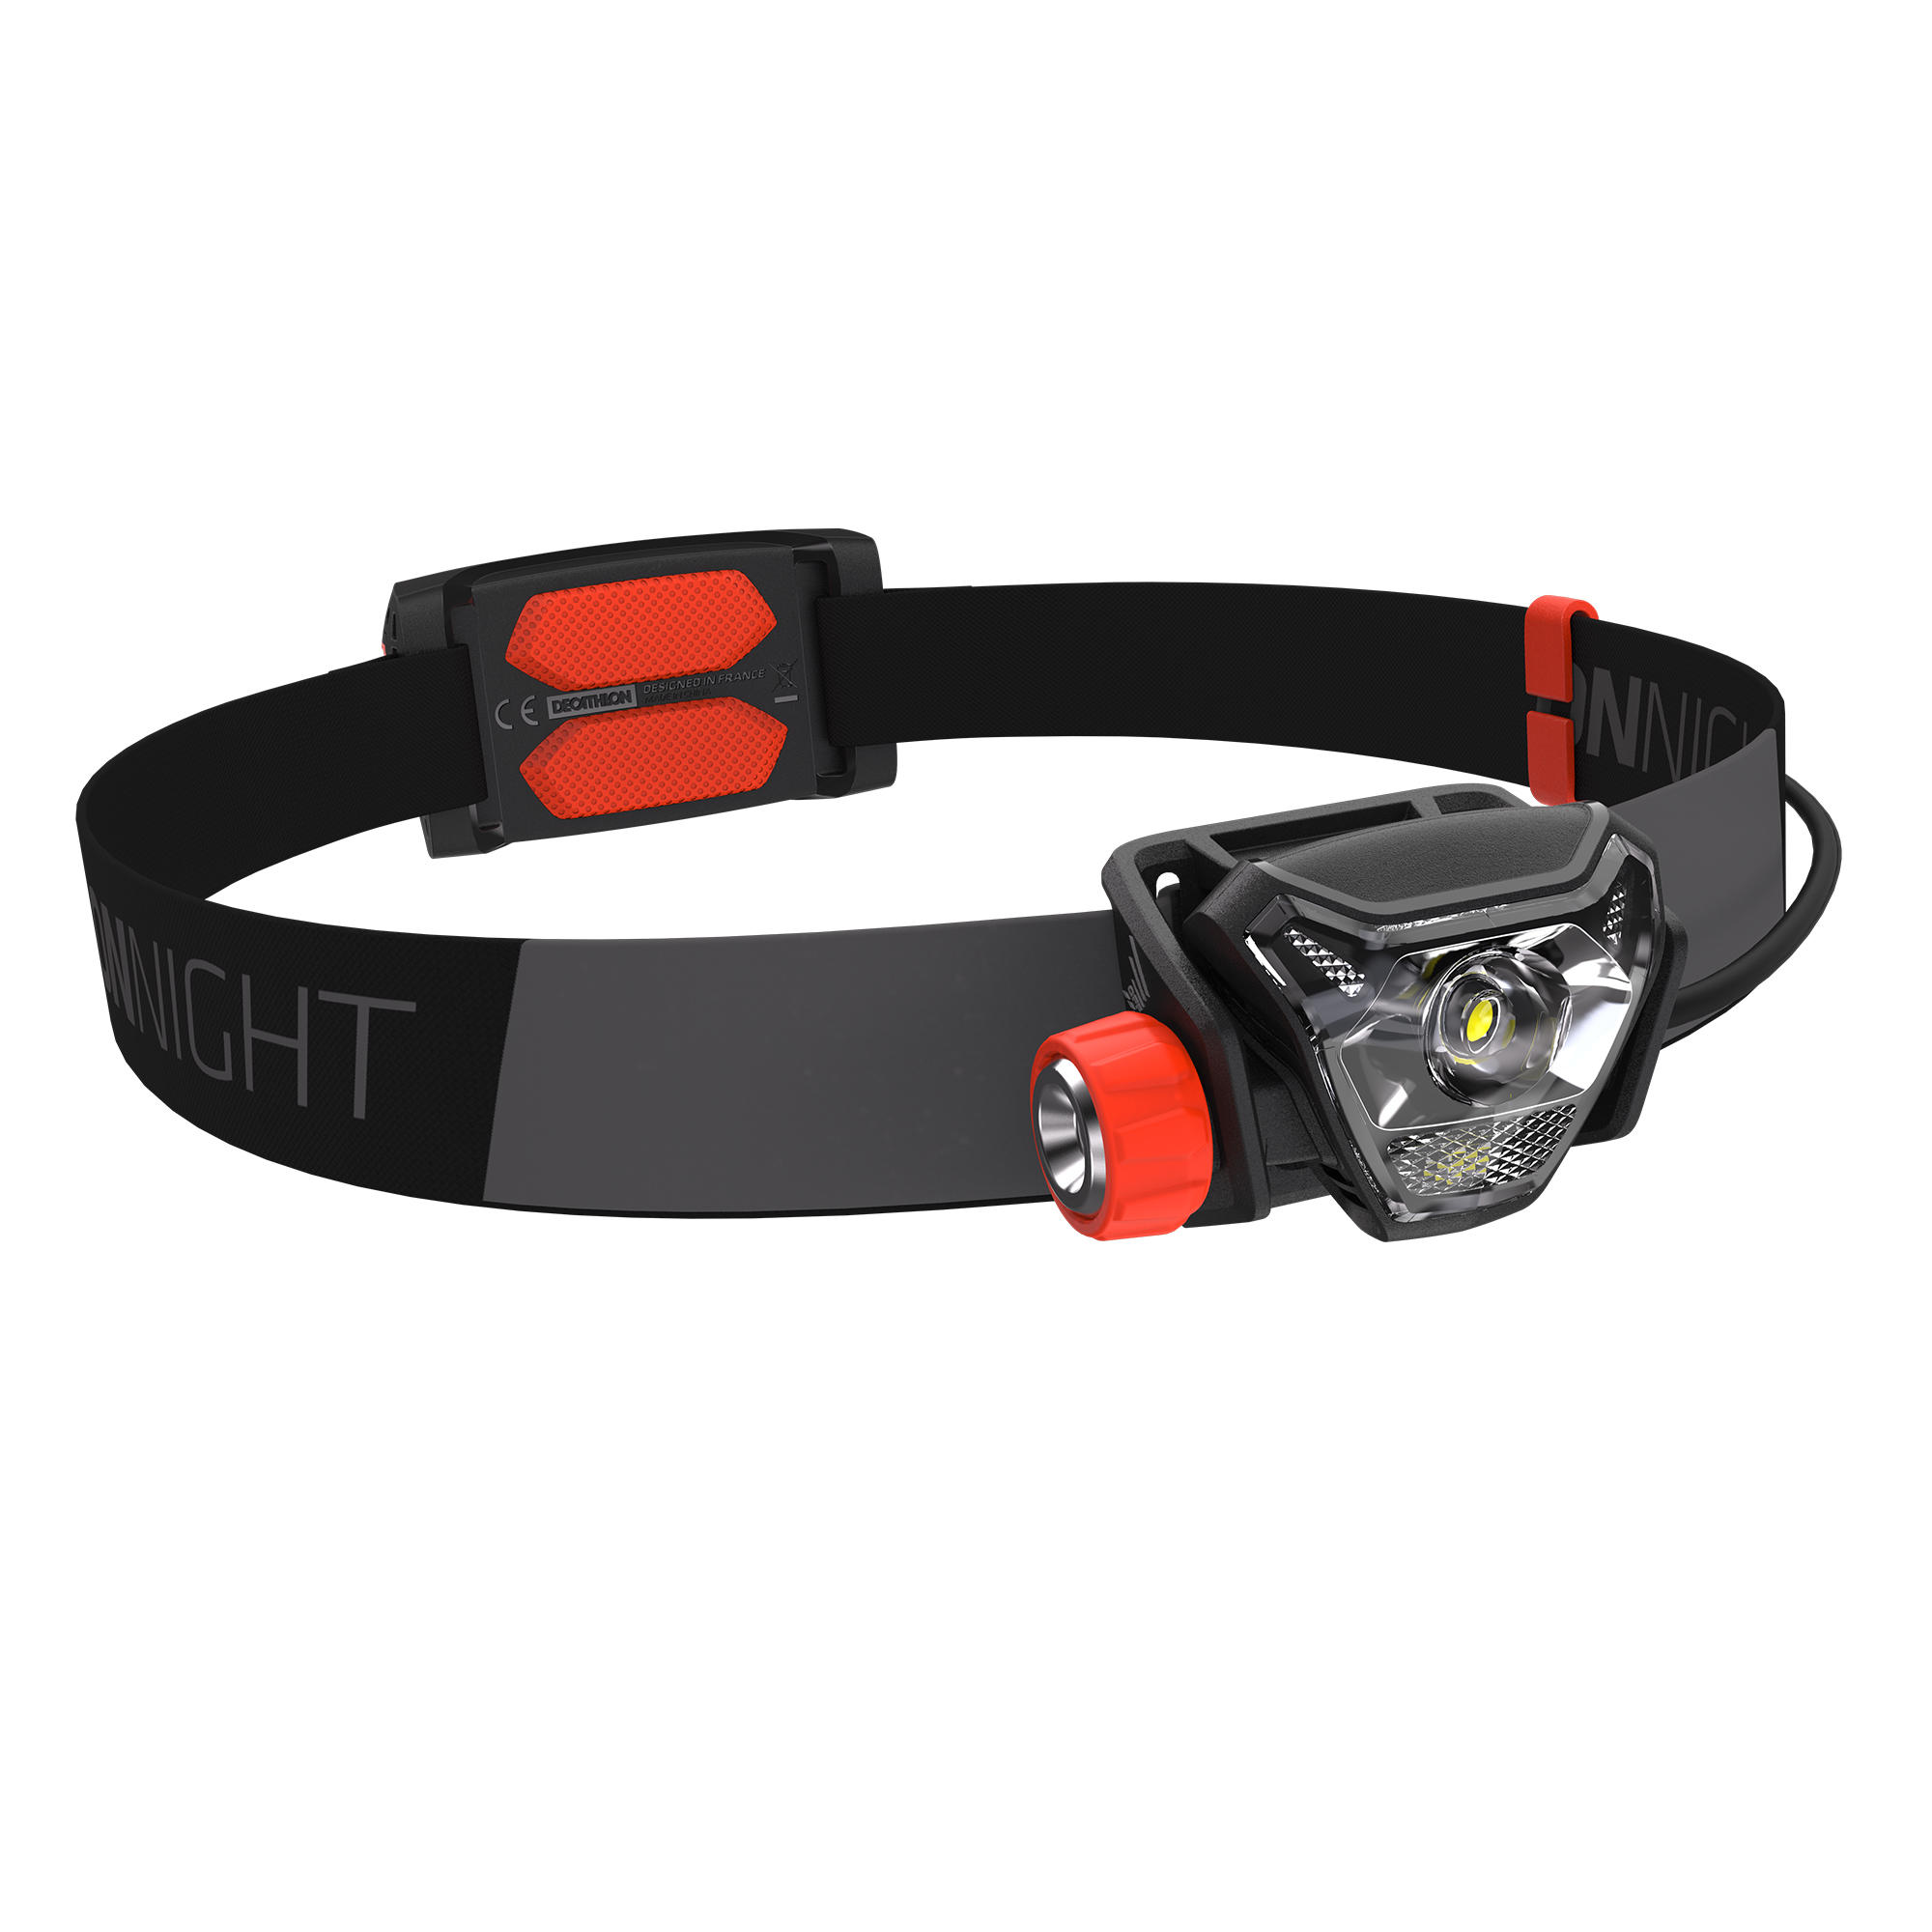 OnNight 710 Trail Running Head Lamp 300 Lumens - Black/Orange